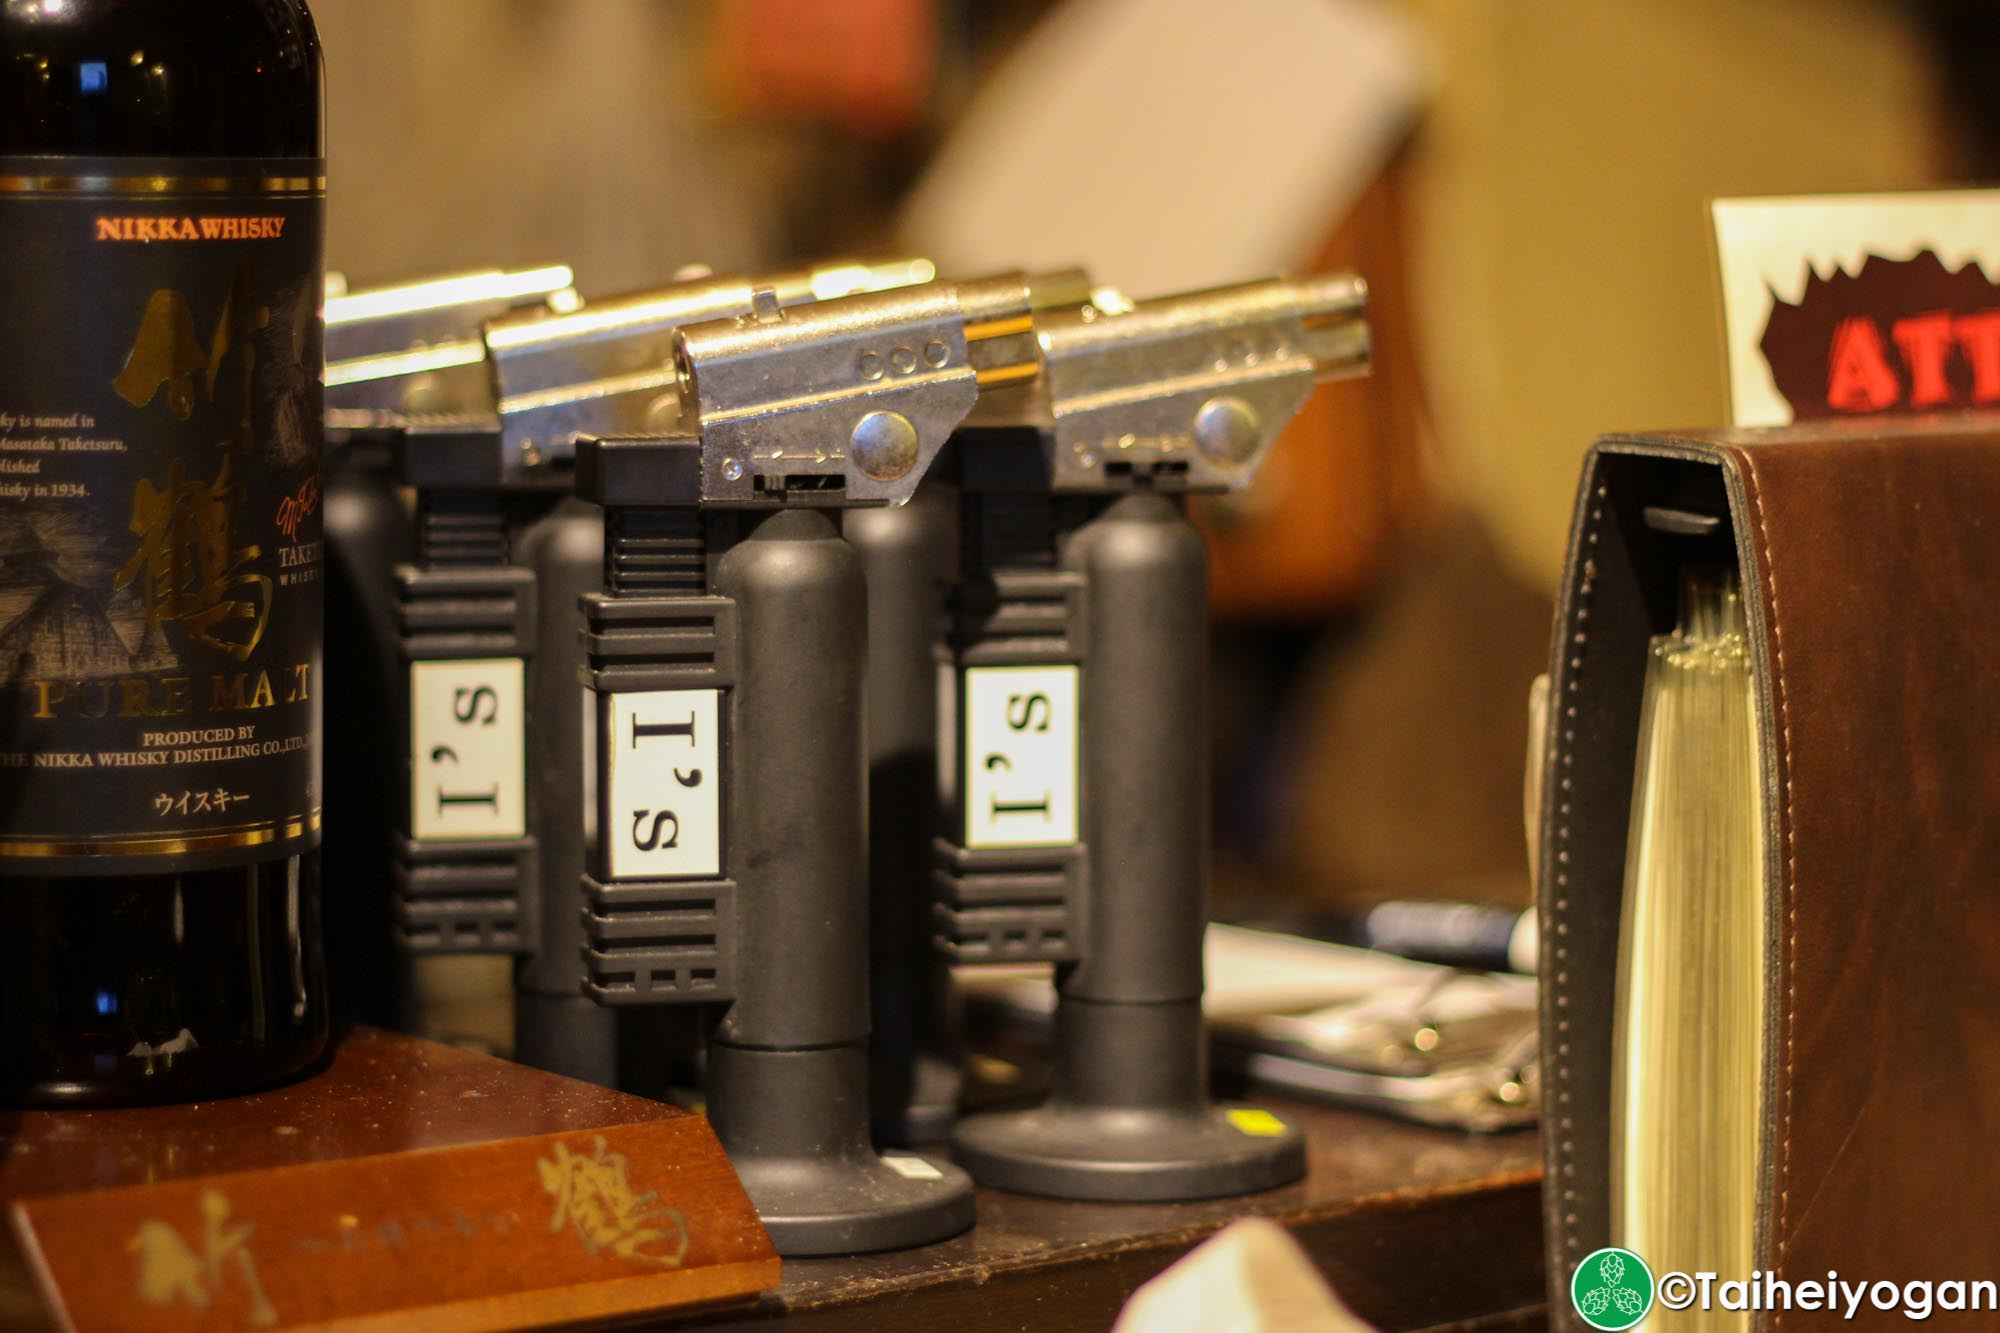 I's Public Ale House - Interior - Cigar Lighters